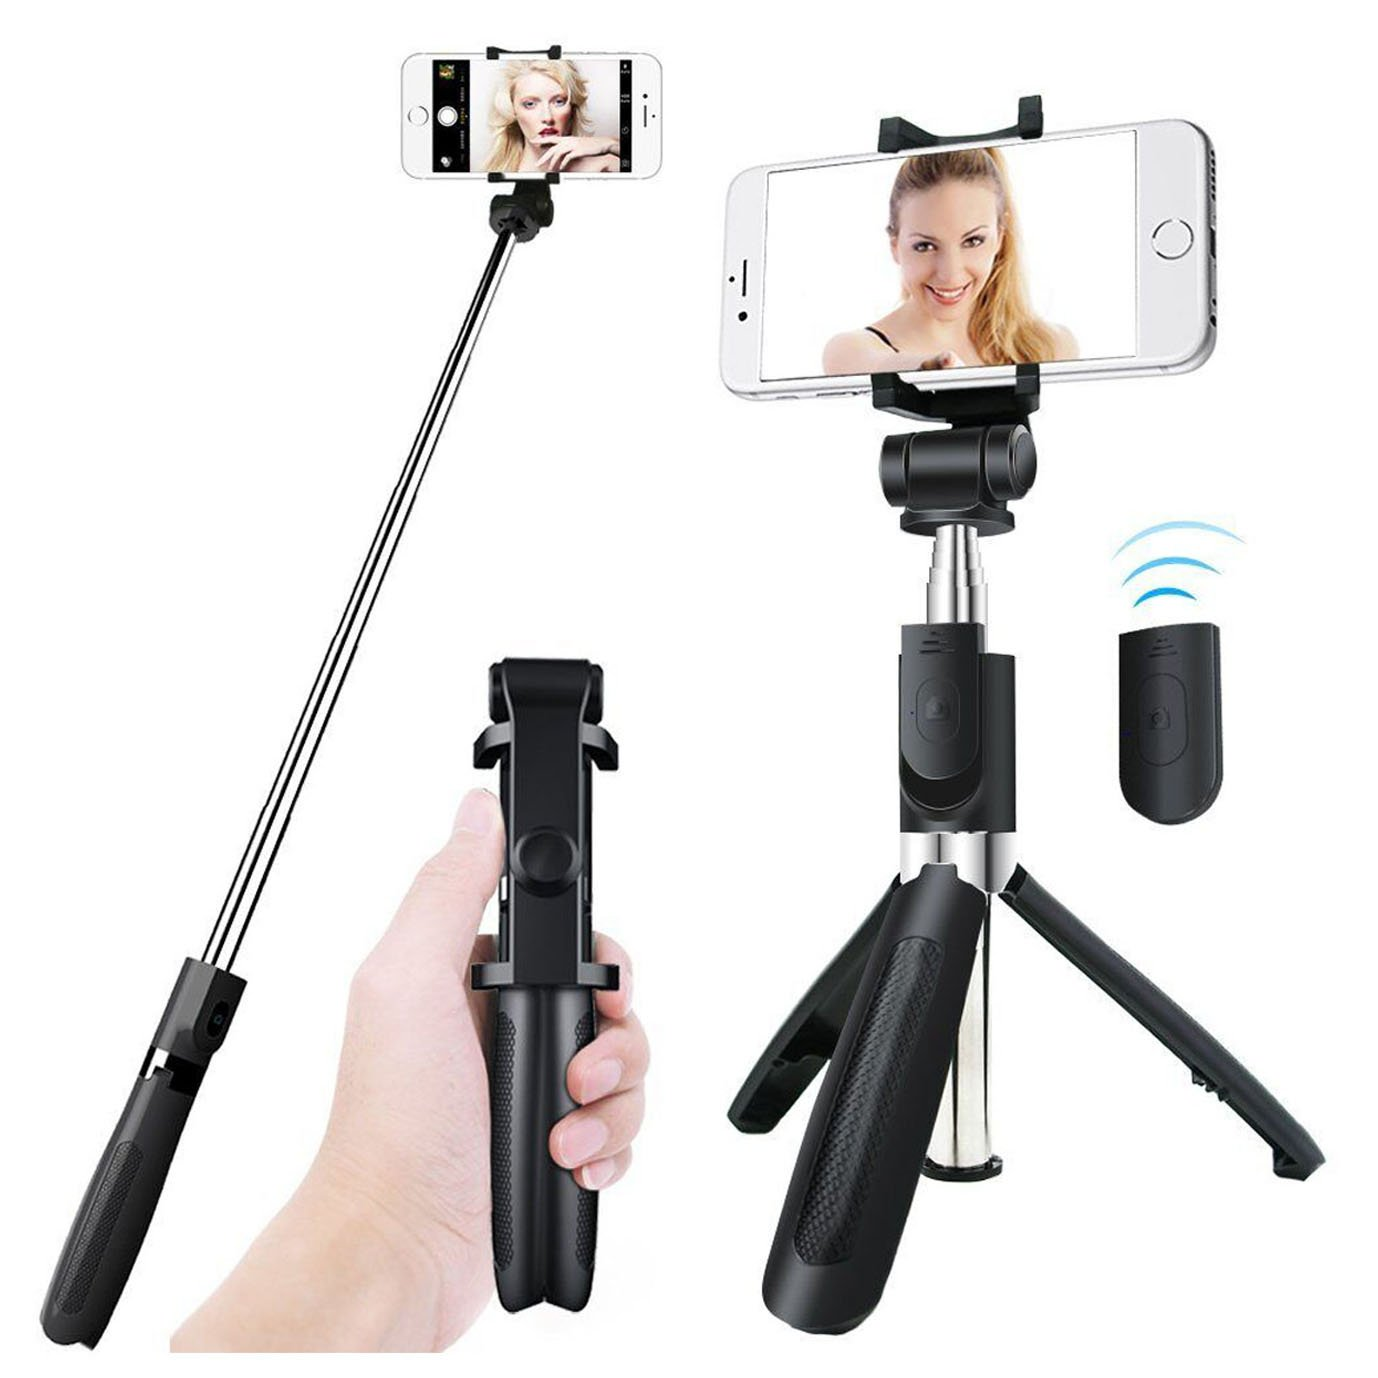 Amzaglifpen bluetooth Selfie Stick Tripod, Aluminum Extendable Monopod with Wireless Remote Shutter Adjustable Phone Holder for iPhone X 8 7 6s 6 Plus Samsung Galaxy S8 Note 8 Android,for Live Broadc